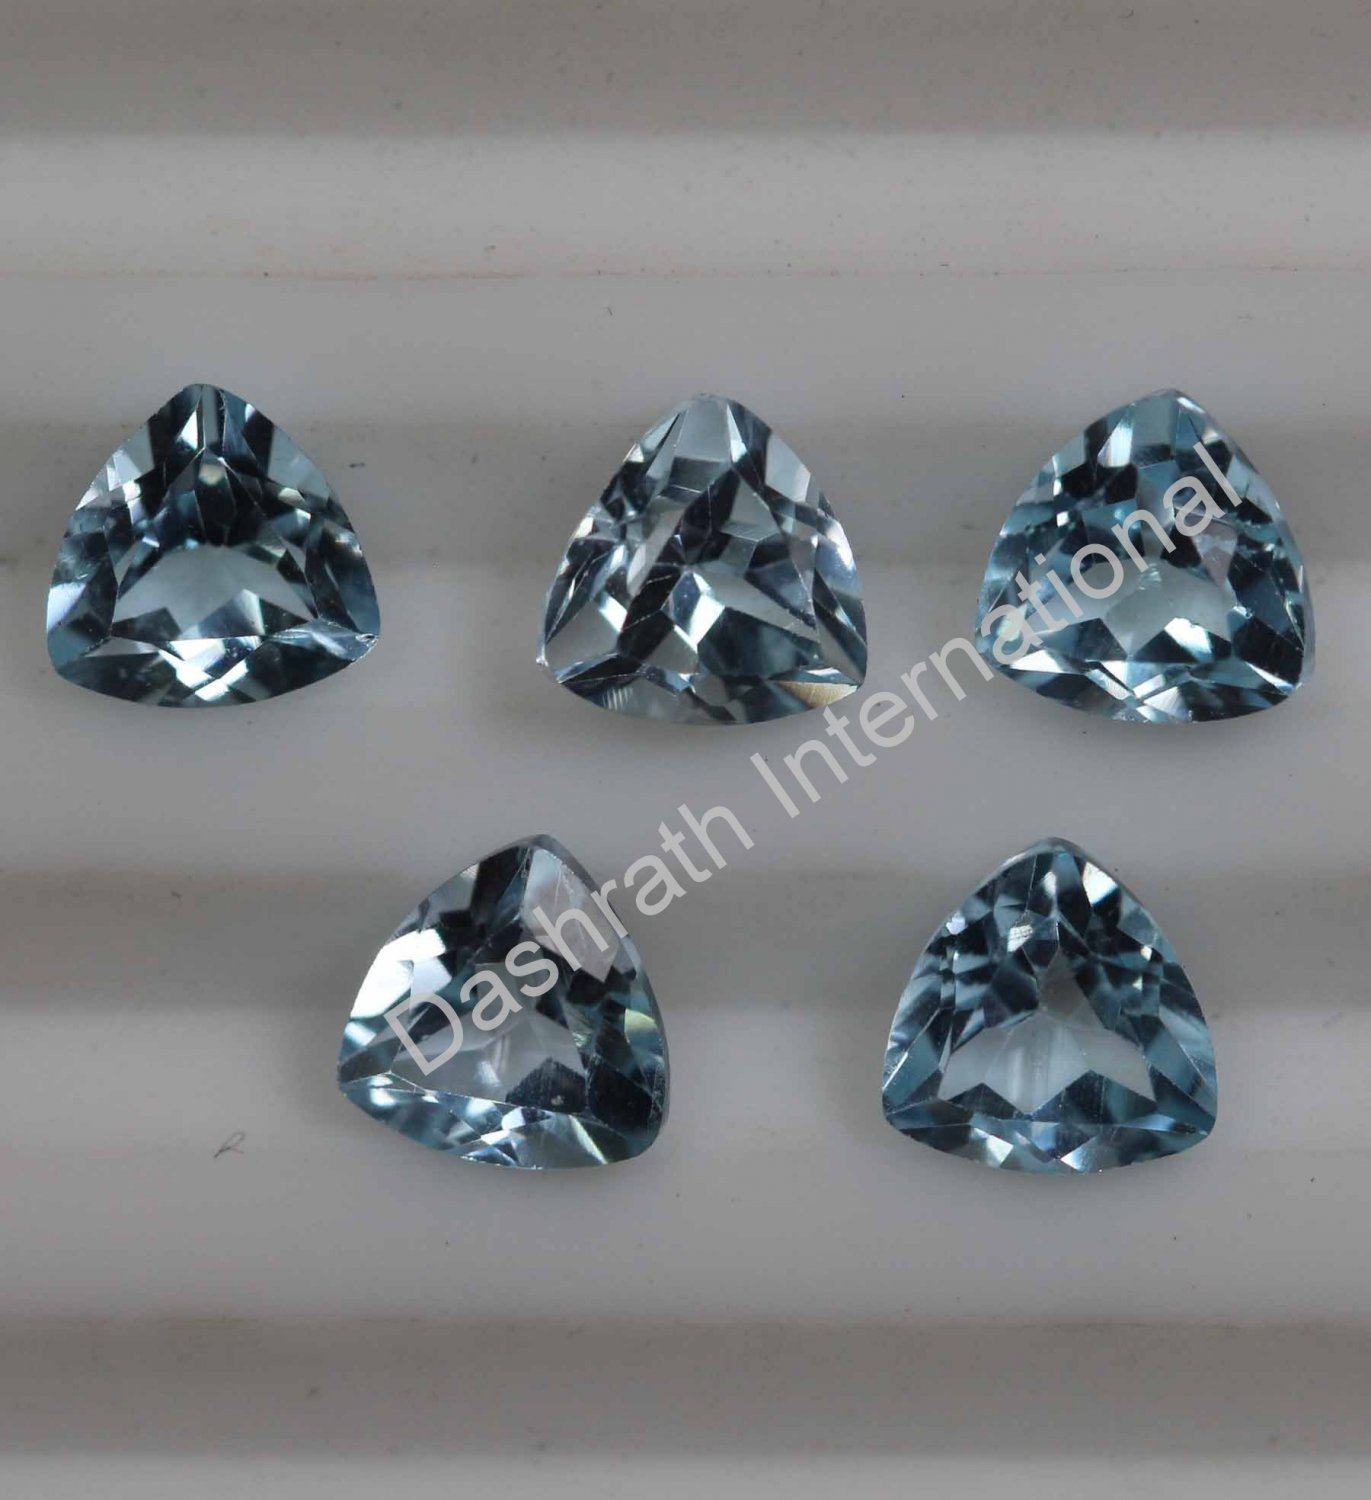 5mm Natural Sky Blue Topaz Faceted Cut Trillion 100 Pieces Lot Top Quality Loose Gemstone